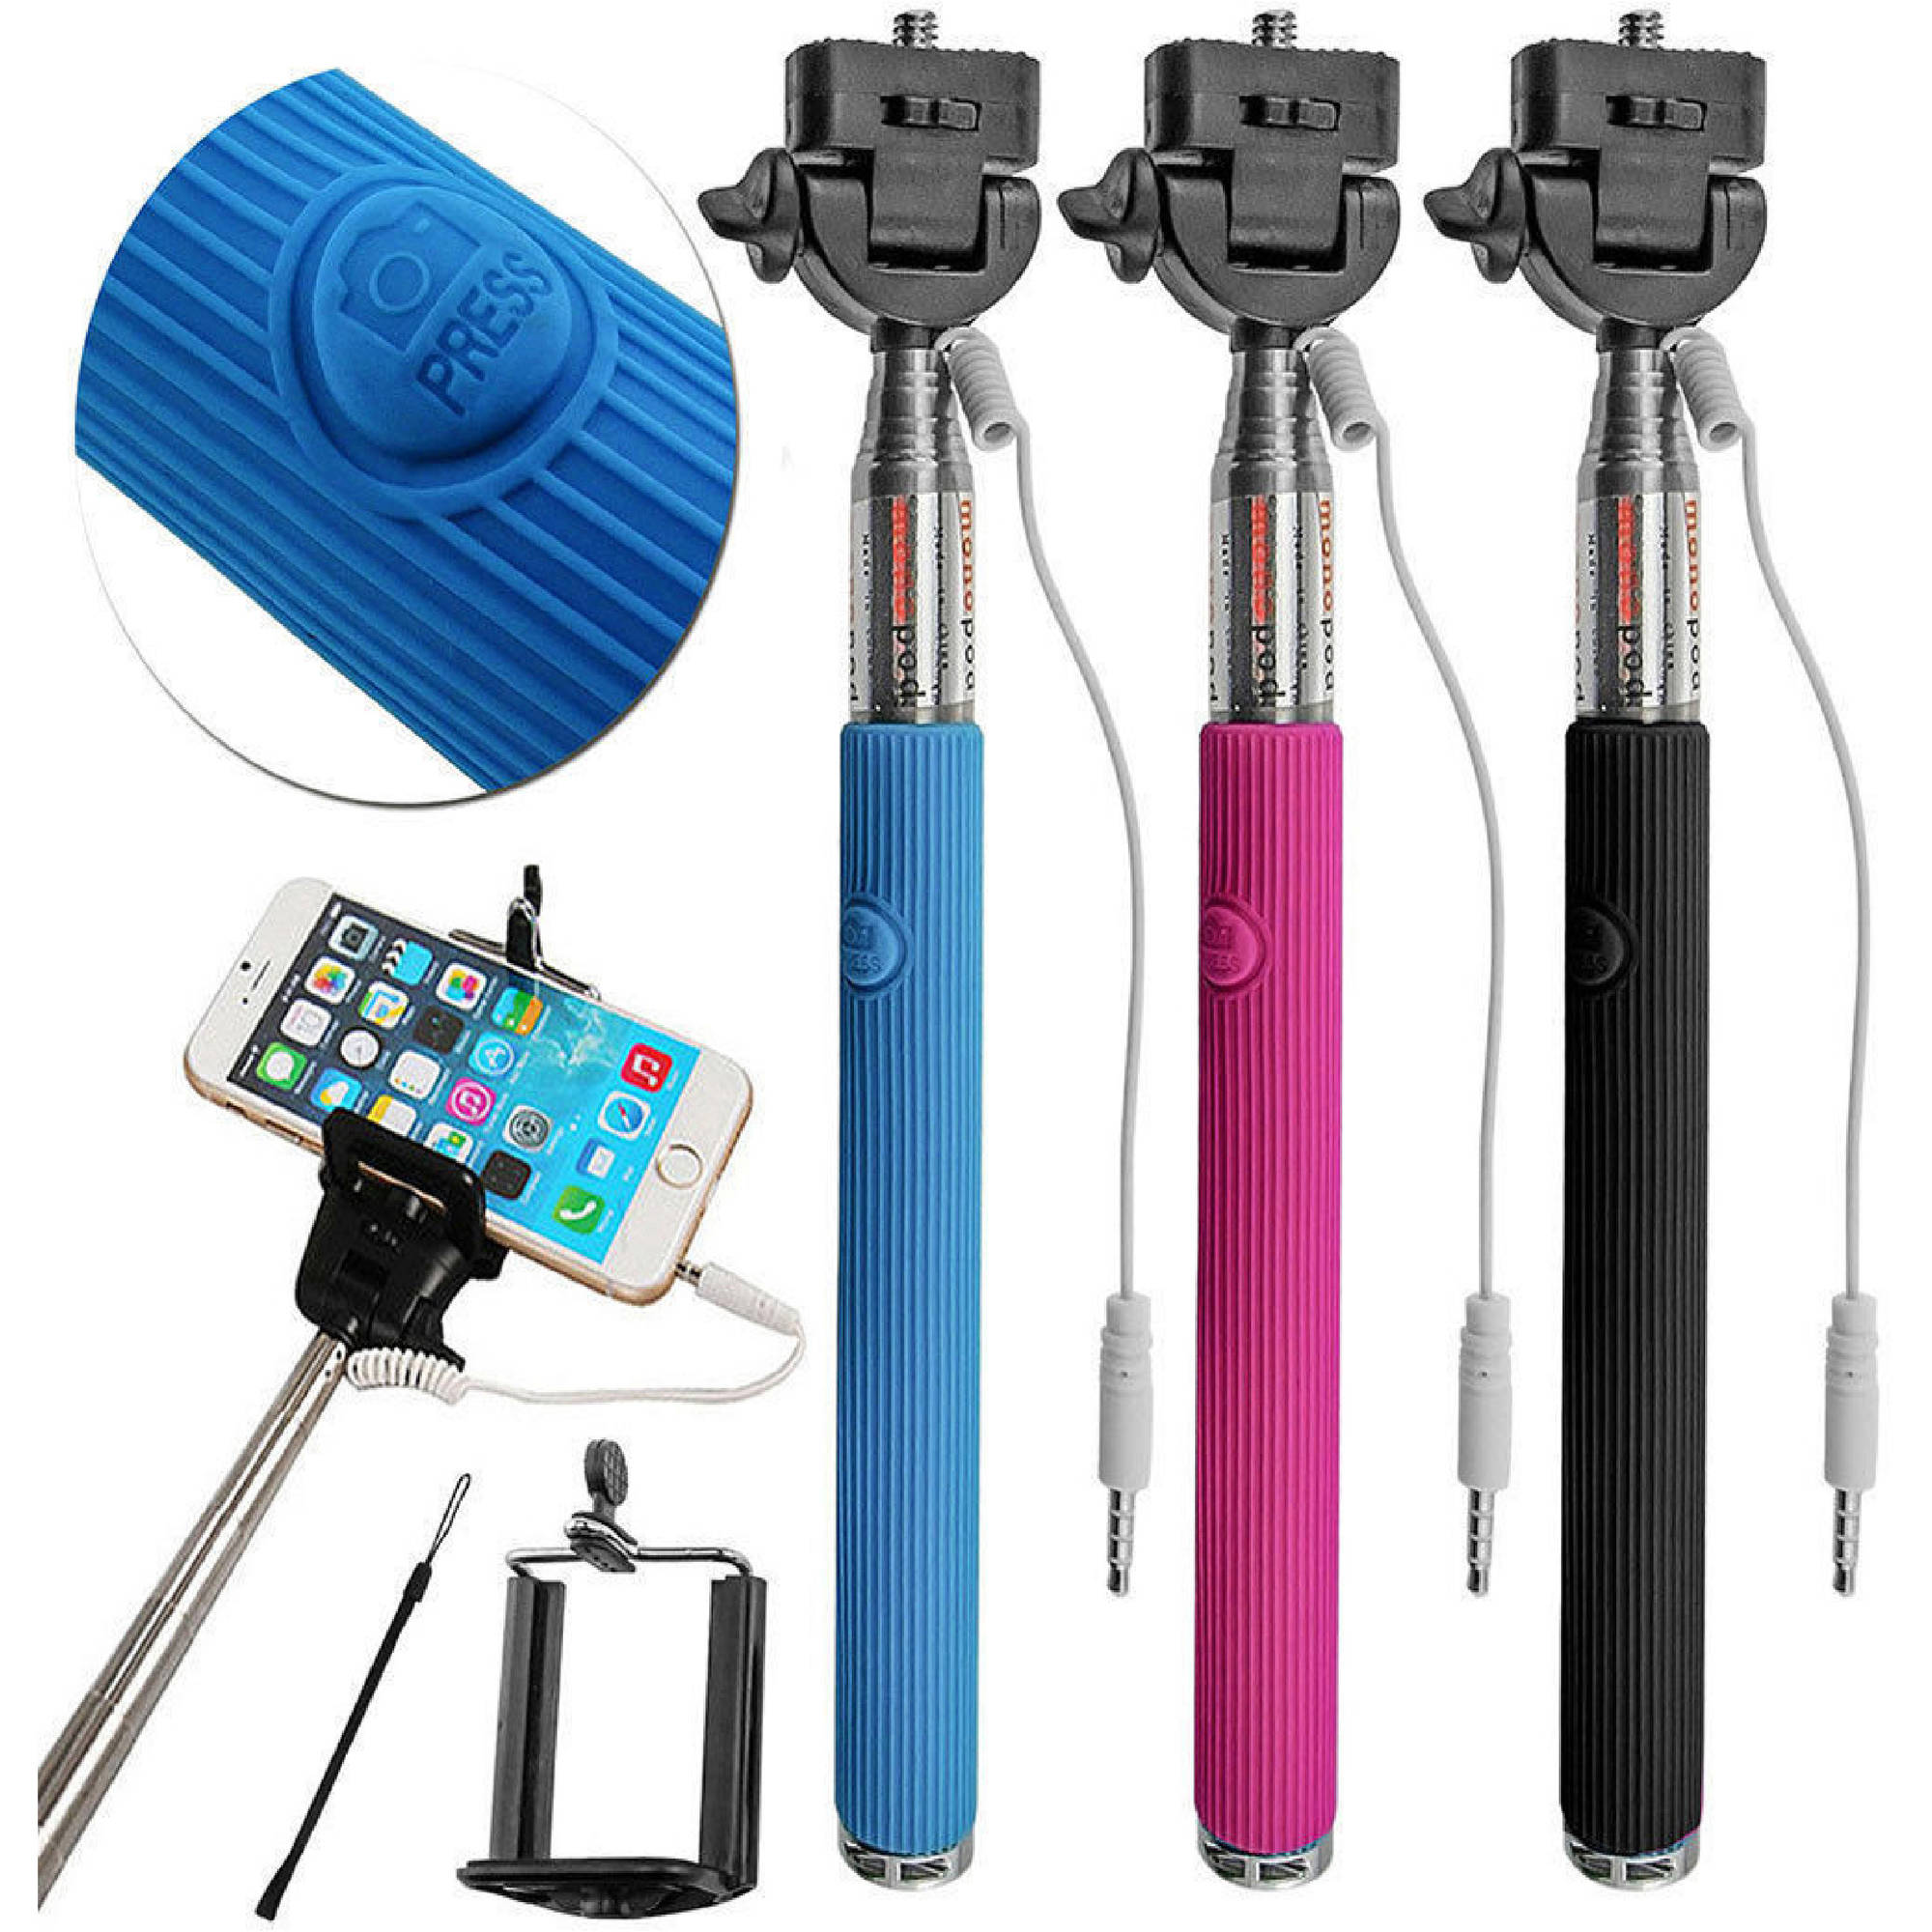 "Carco Go Selfie Stick Wired Shutter 42"" for iPhone, Samsung Galaxy and Android phones"